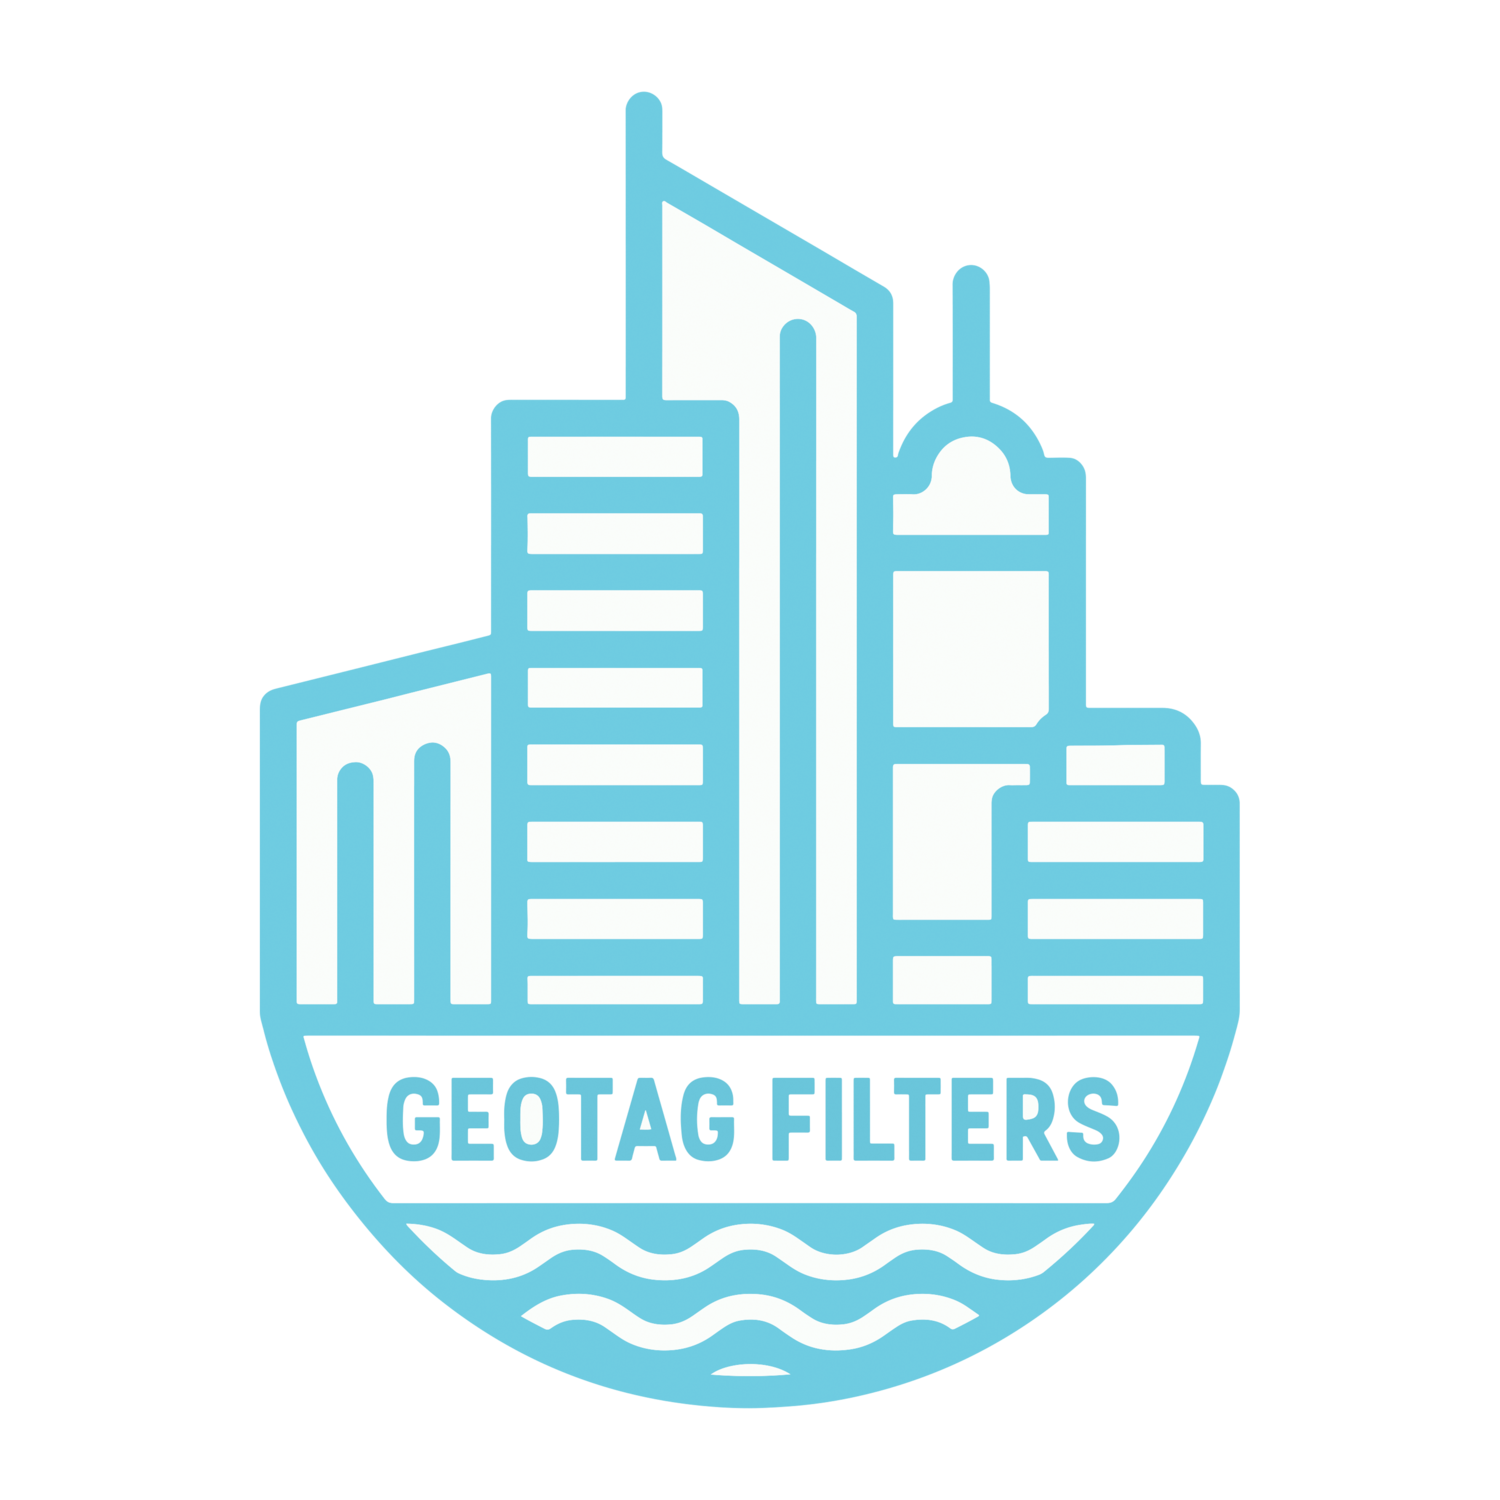 Geotag Filters | Custom Snapchat Filter Design